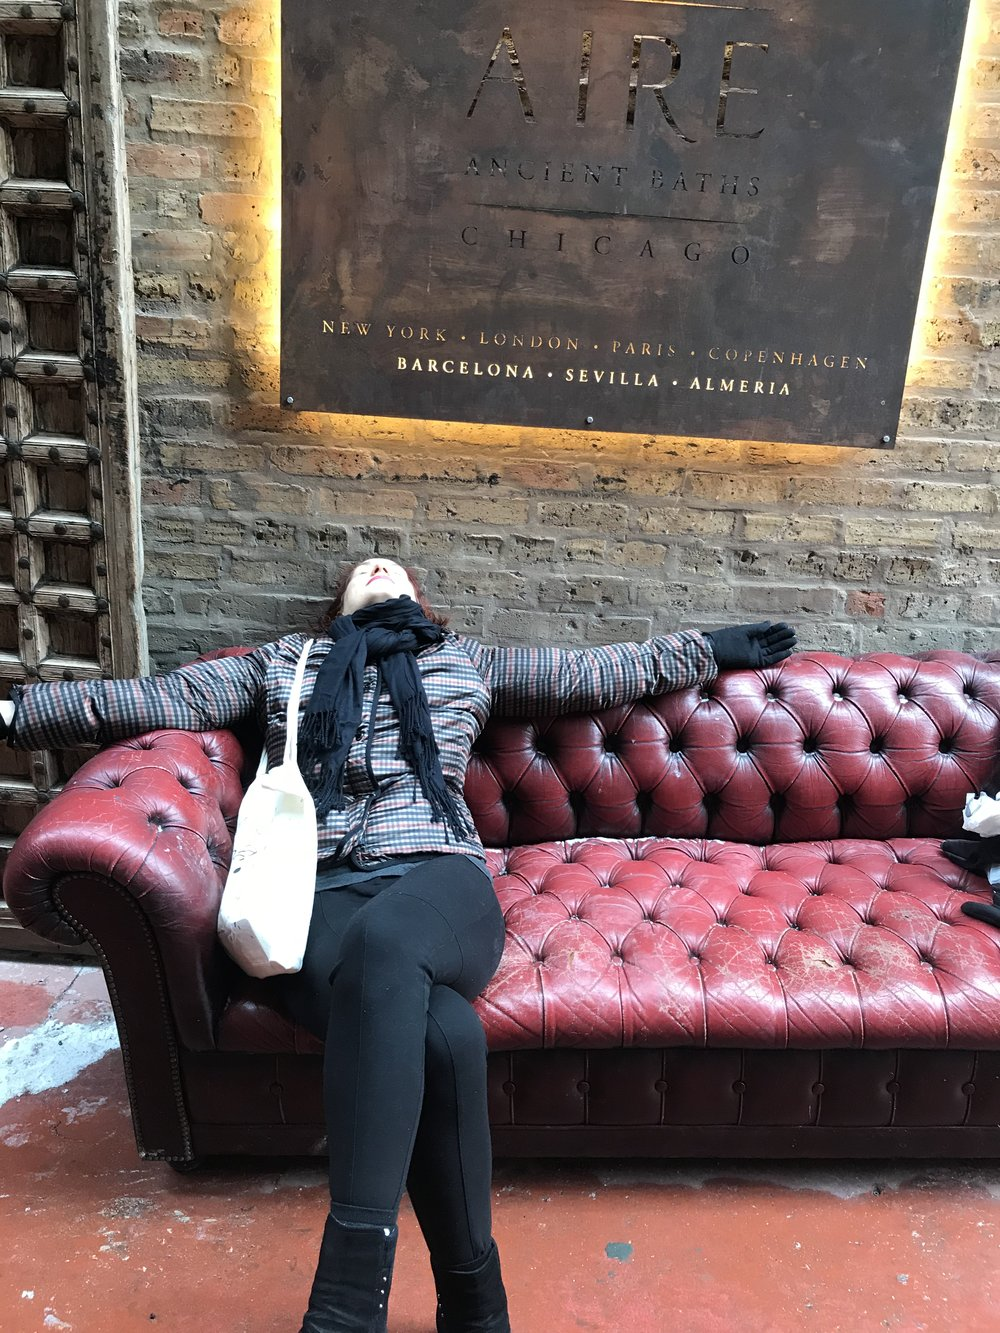 Me, after exploring Air Ancient Baths, Chicago on a 3 degree January day in Chicago - no worries as the floors are heated and the baths are all warm and relaxing.  I barely needed a robe to navigate each bath, the salt scrub area and eucalyptus steam room (my fave!).